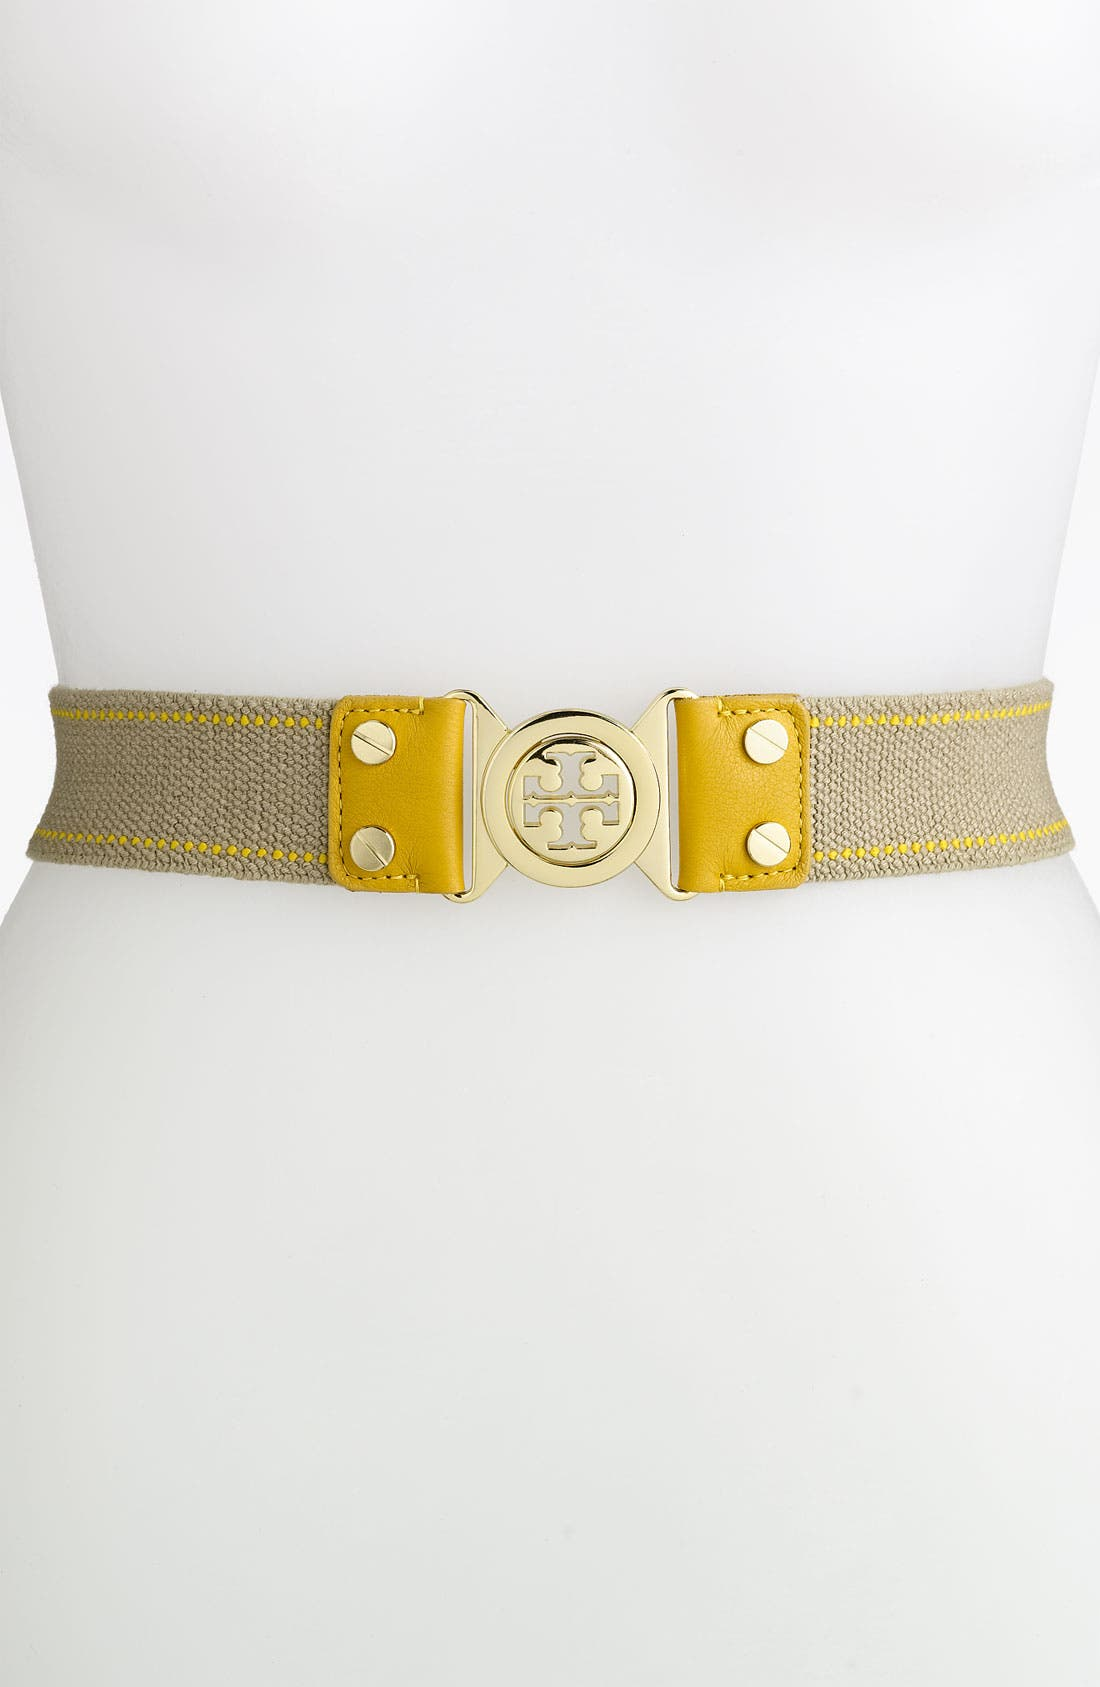 Alternate Image 1 Selected - Tory Burch 'Stretch Interlocking' Belt